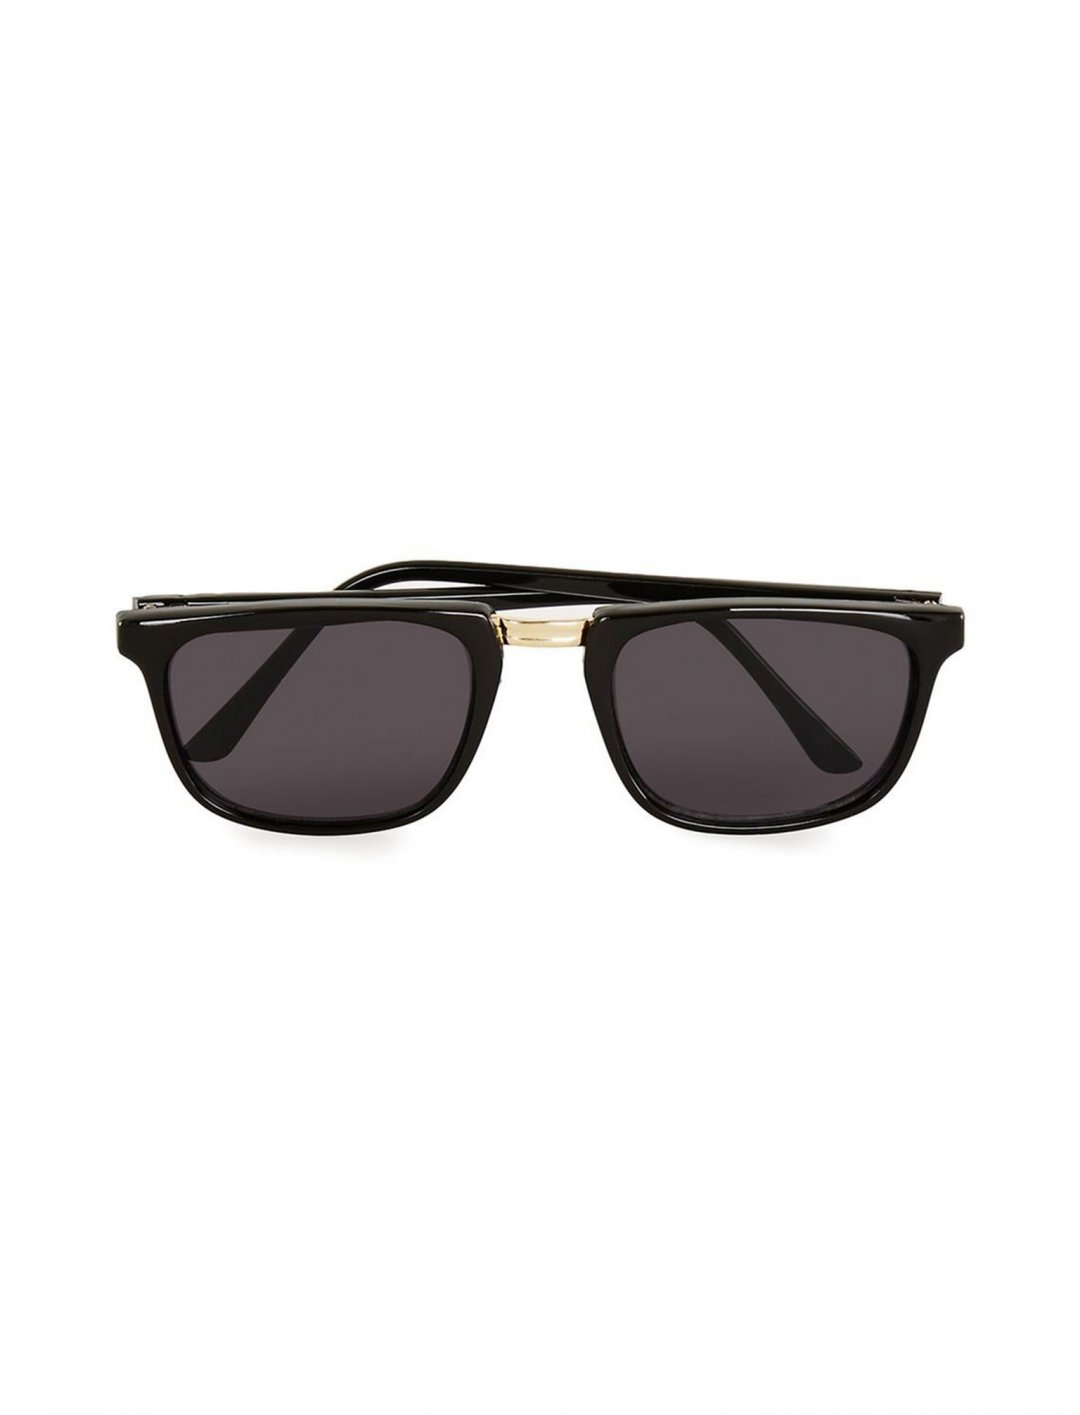 "Hindsight Vintage's Sunglasses {""id"":16,""product_section_id"":1,""name"":""Accessories"",""order"":15} Hindsight Vintage"